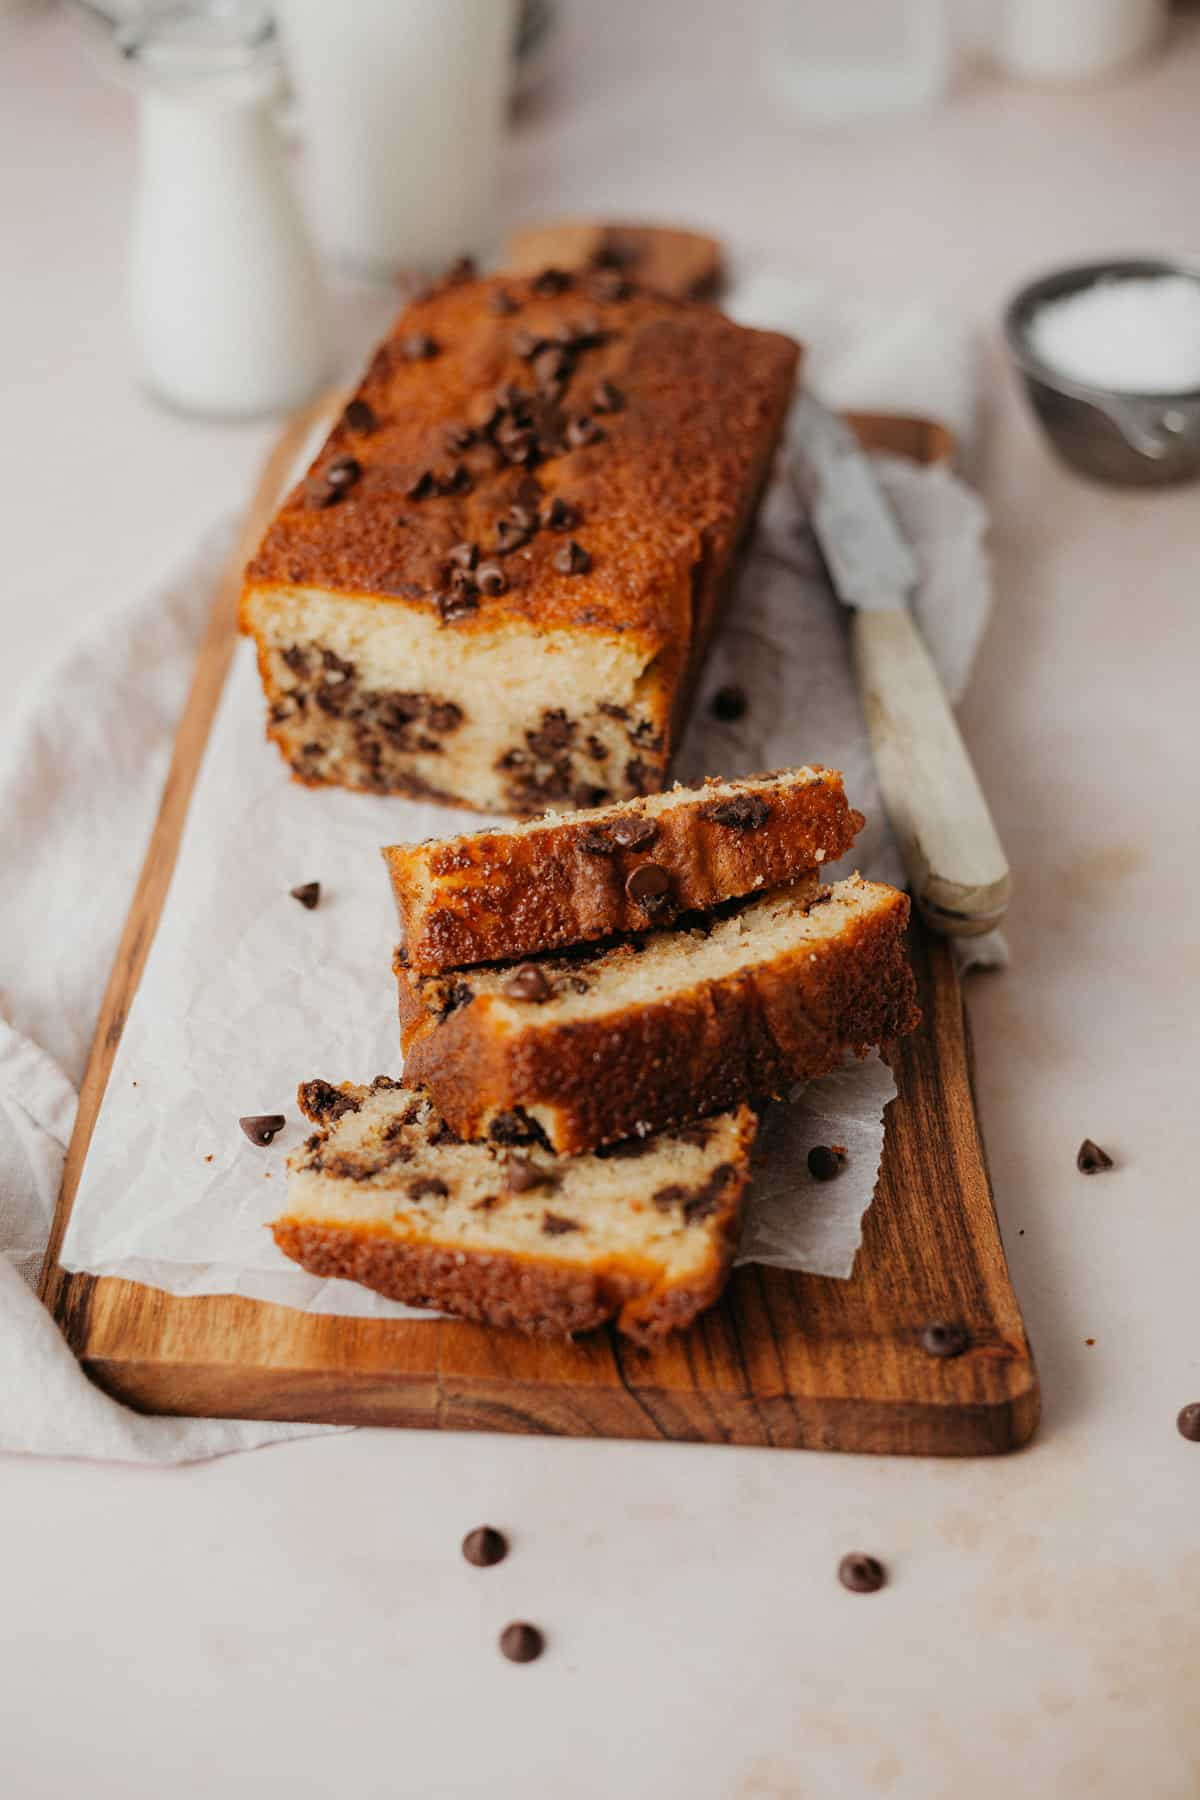 A chocolate chip loaf cake, three slices have been made.